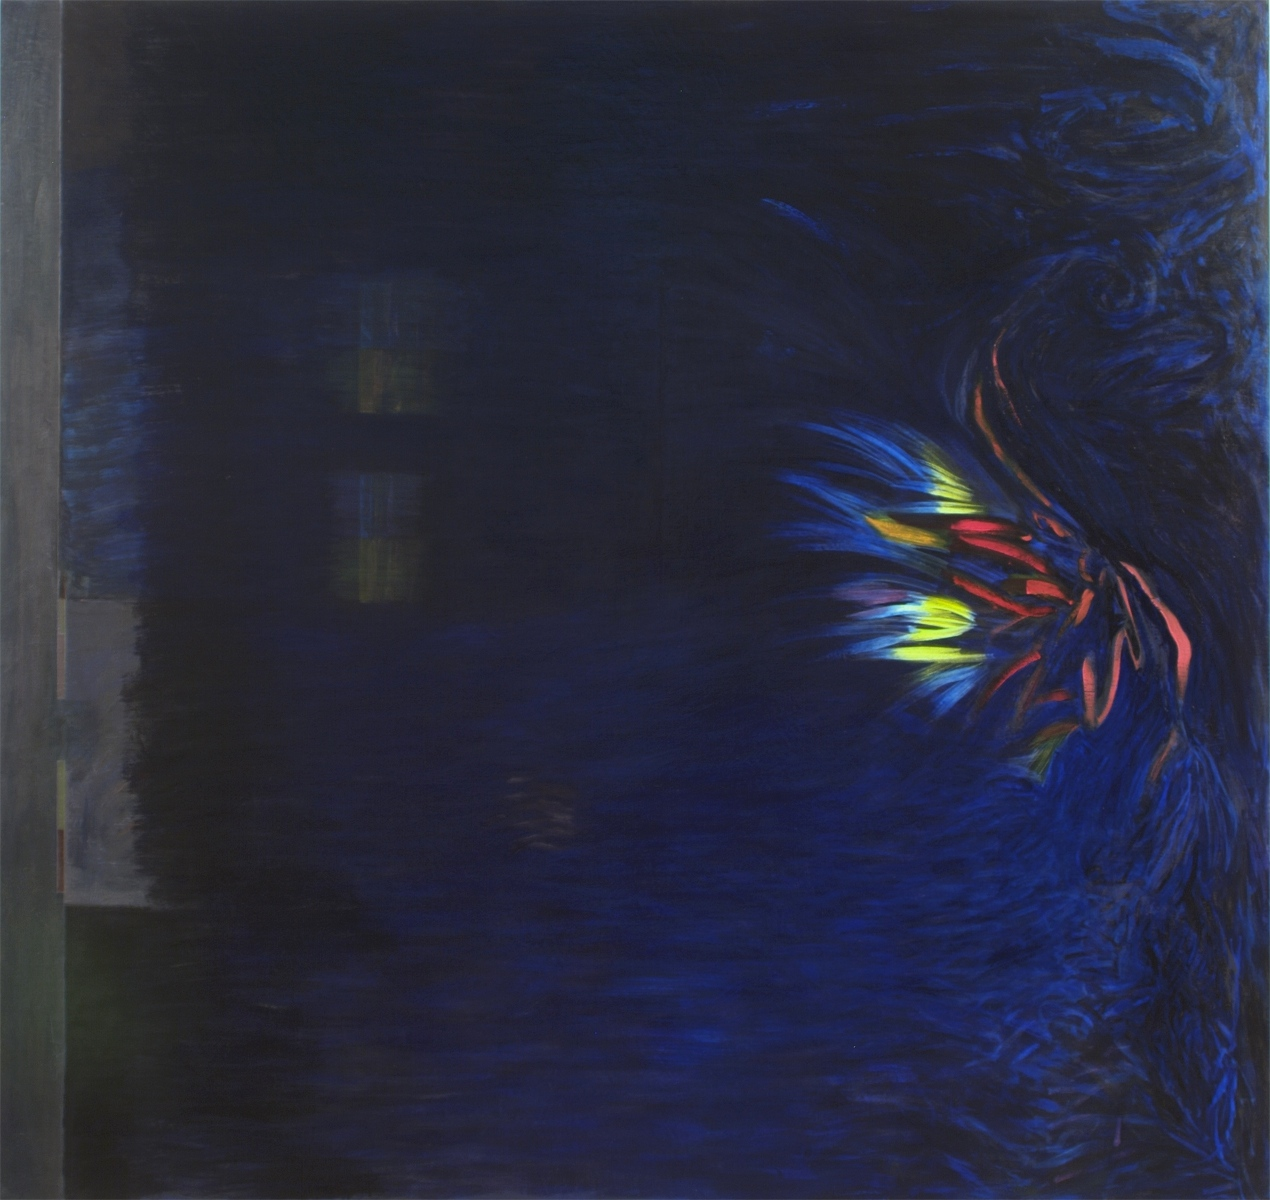 """Owl's Happiness (King of Wends), 2003, oil on linen, 66 1/2""""x70"""" (Collection: Dean Colson and Aileen Ugalde, Miami)"""